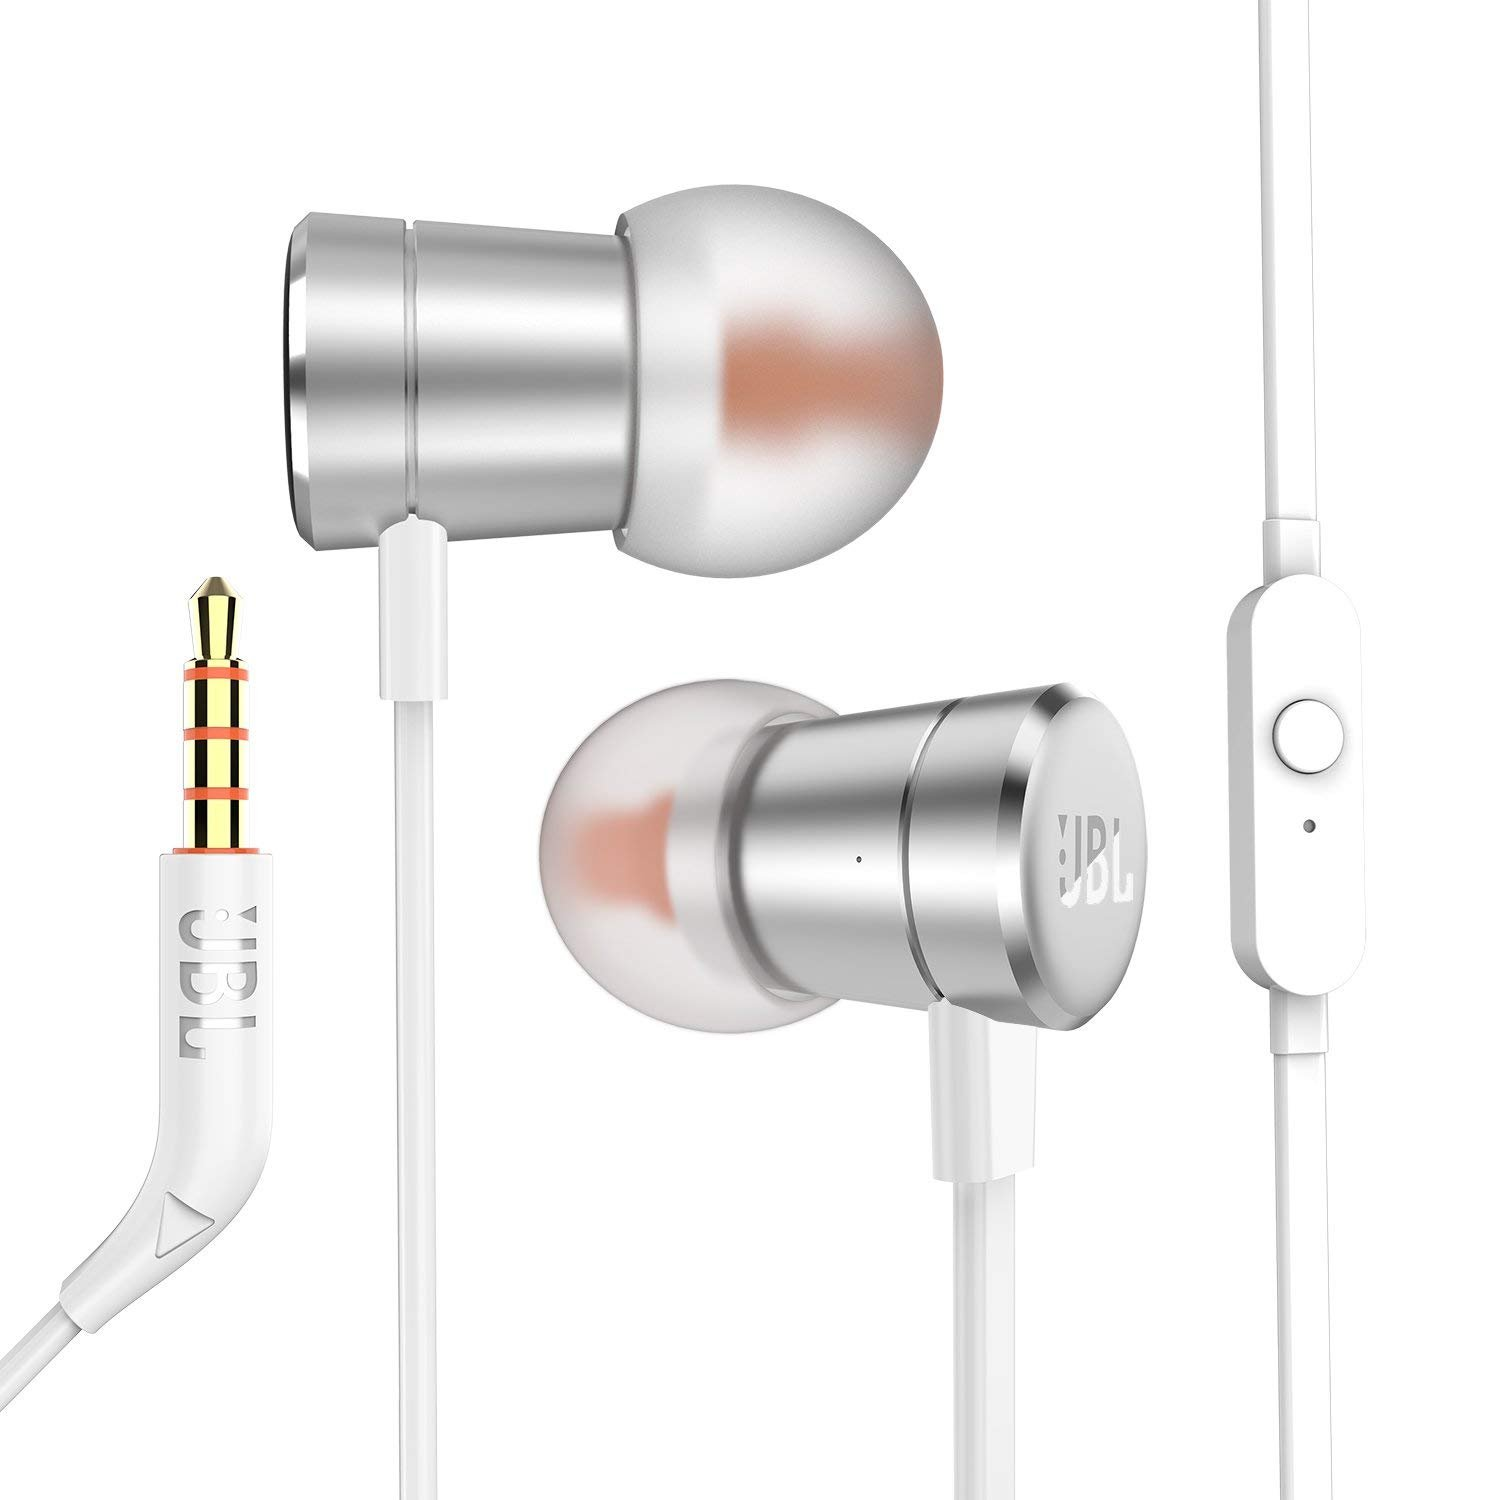 Amazon.com: JBL In-Ear Headphones Pure Bass T290 High Performance with Universal 1 button remote/mic Gold: Electronics